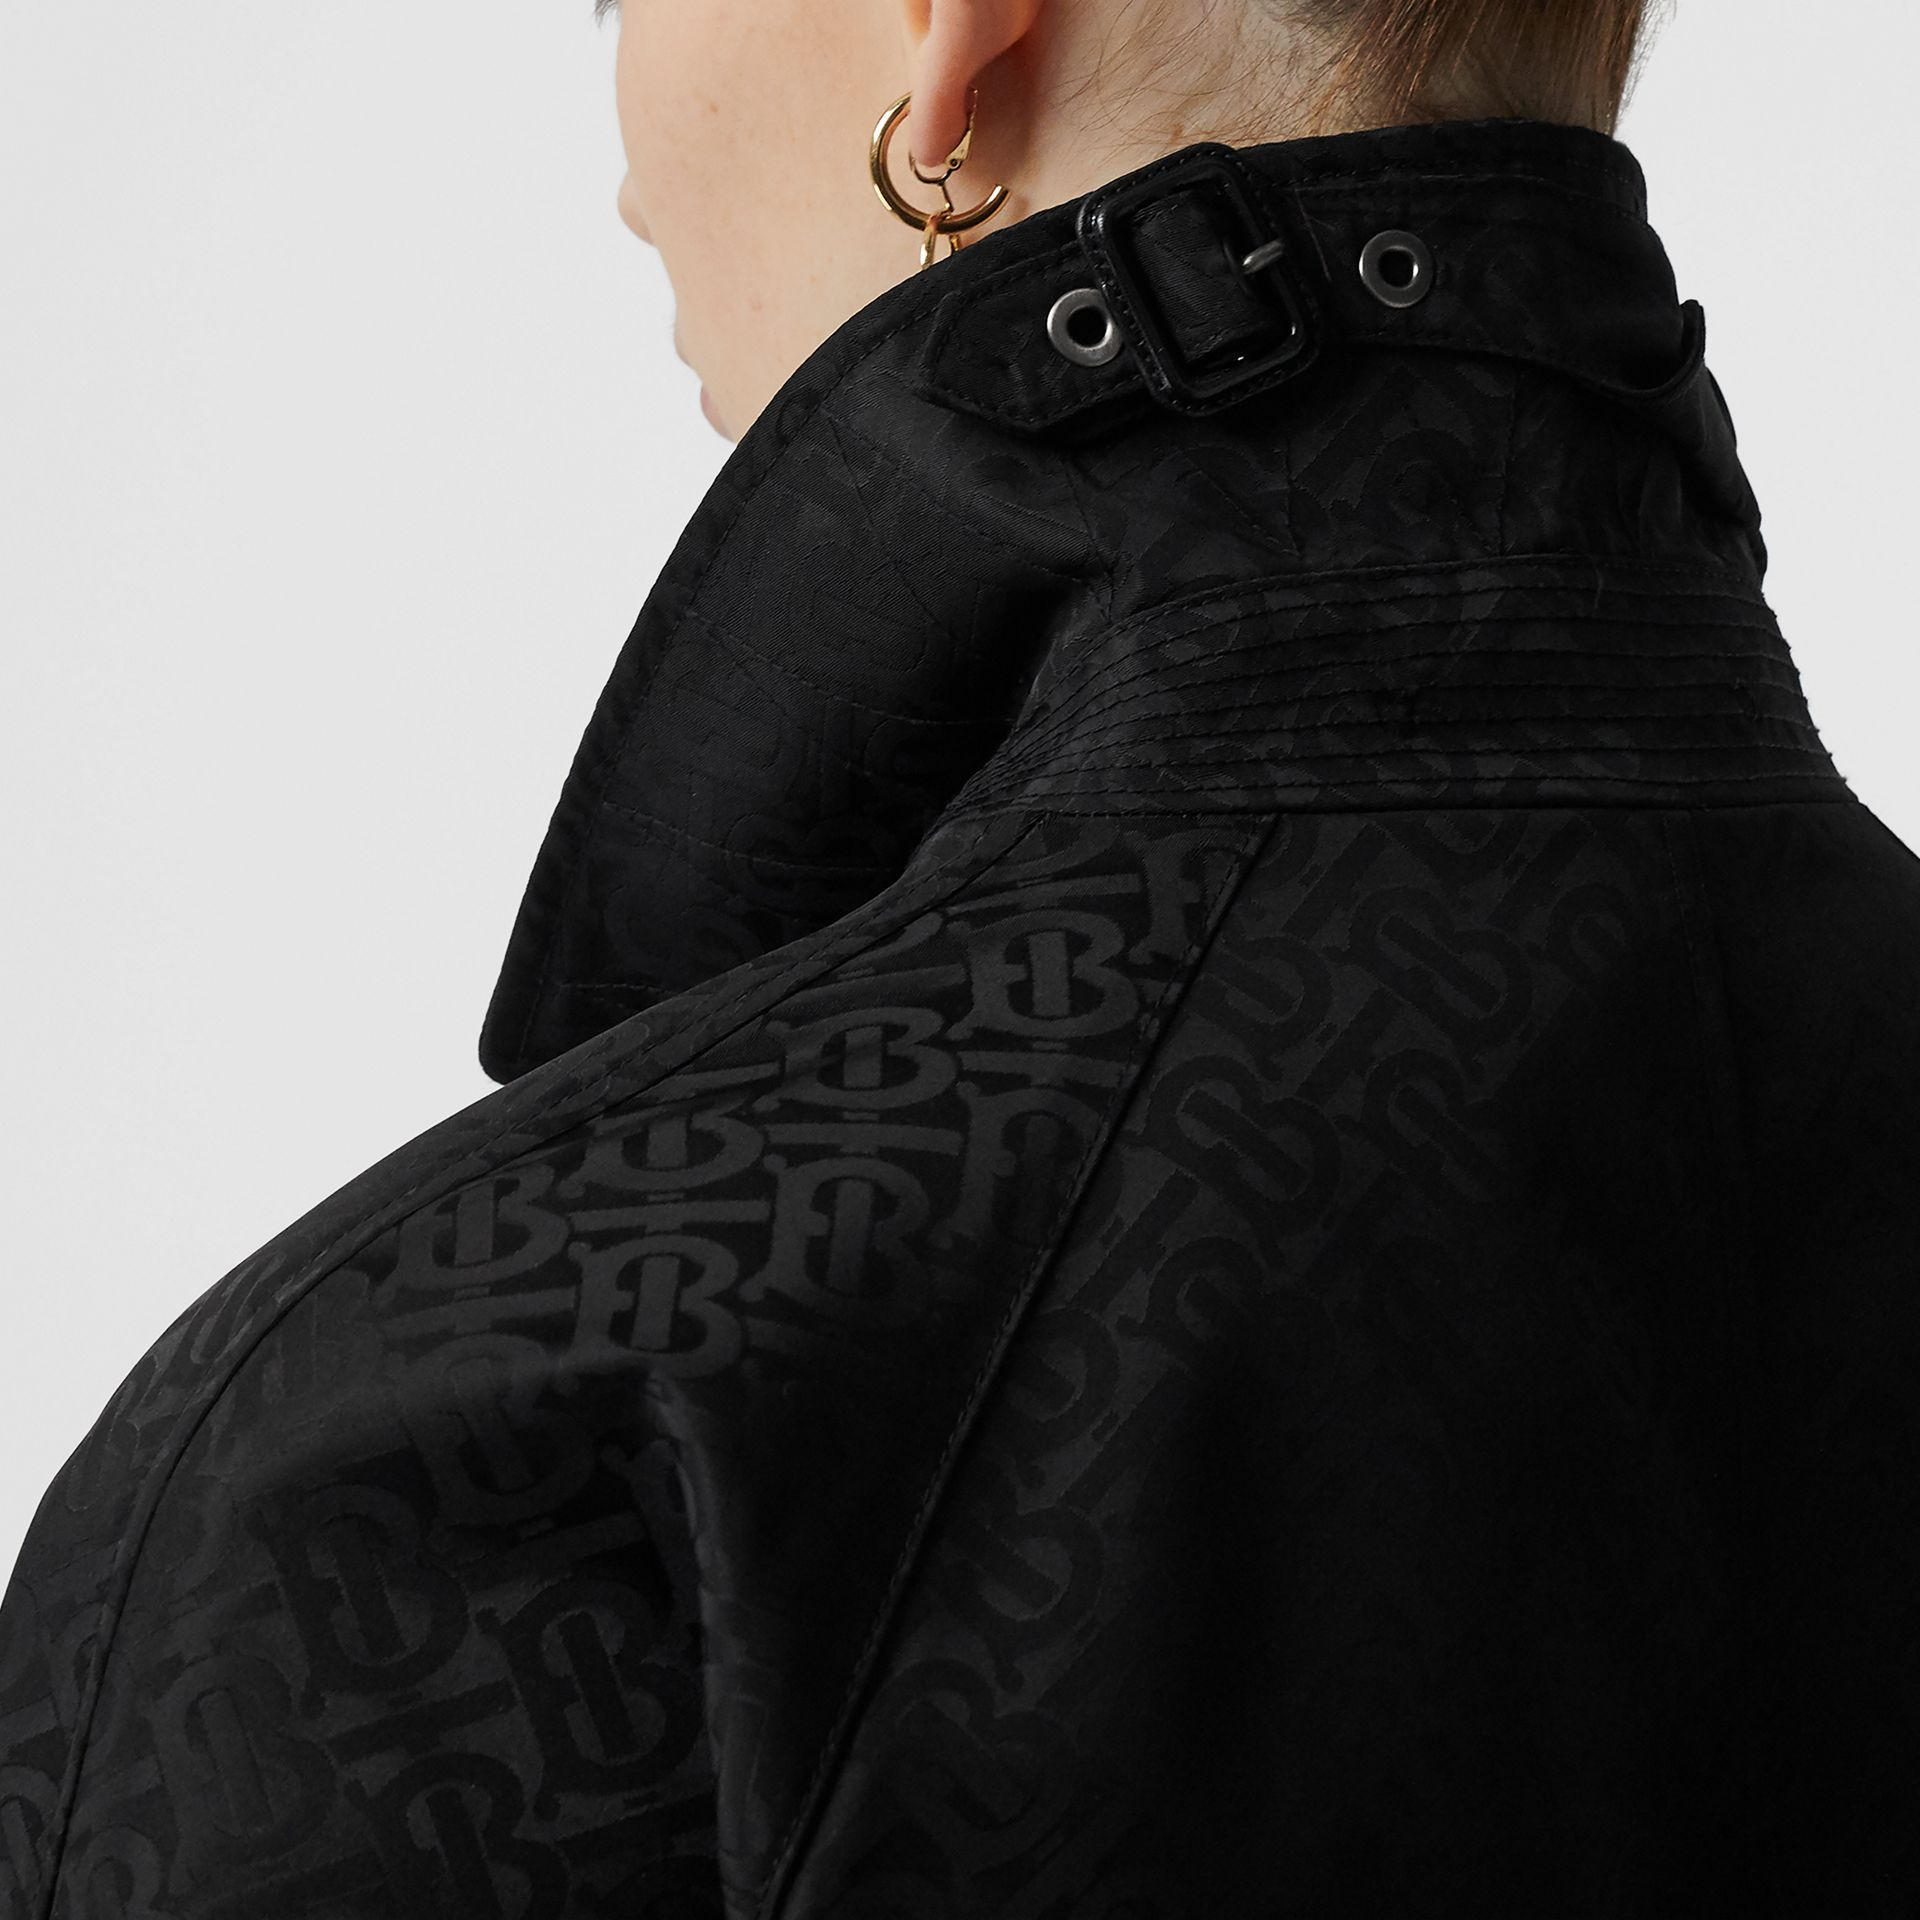 Monogram ECONYL® Jacquard Car Coat in Black - Women | Burberry - gallery image 5